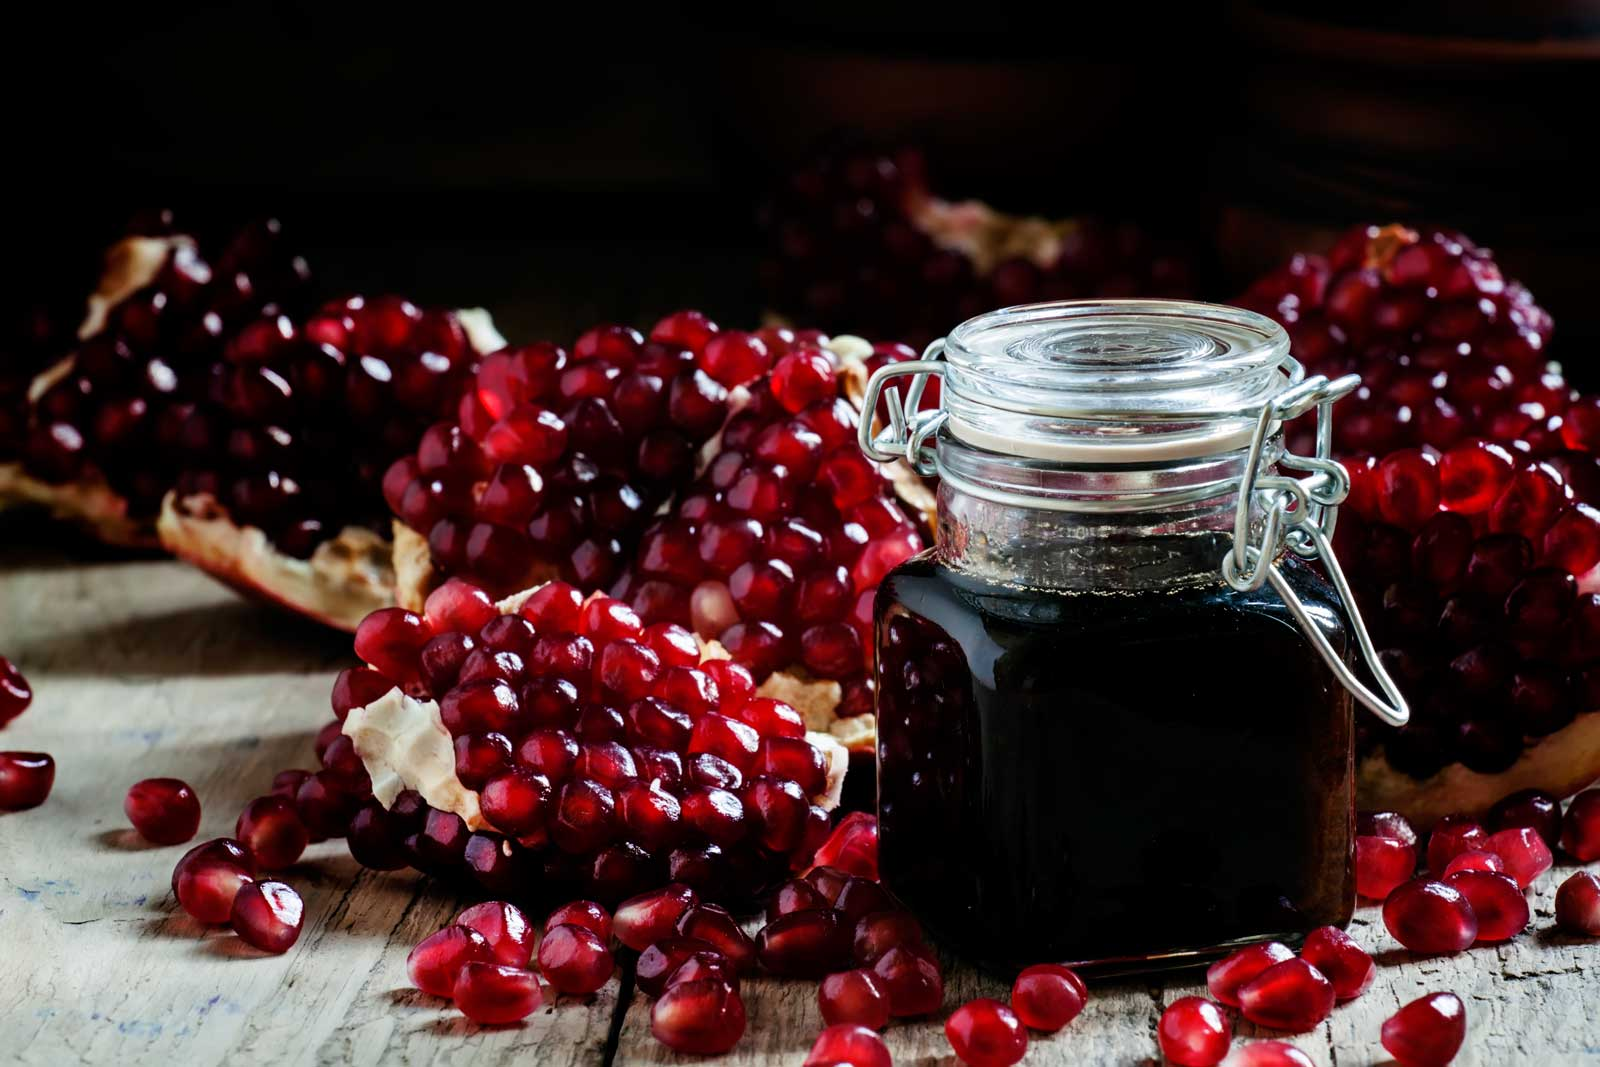 McCormick Gourmet Pomegranate, Fig and Cranberry Compote